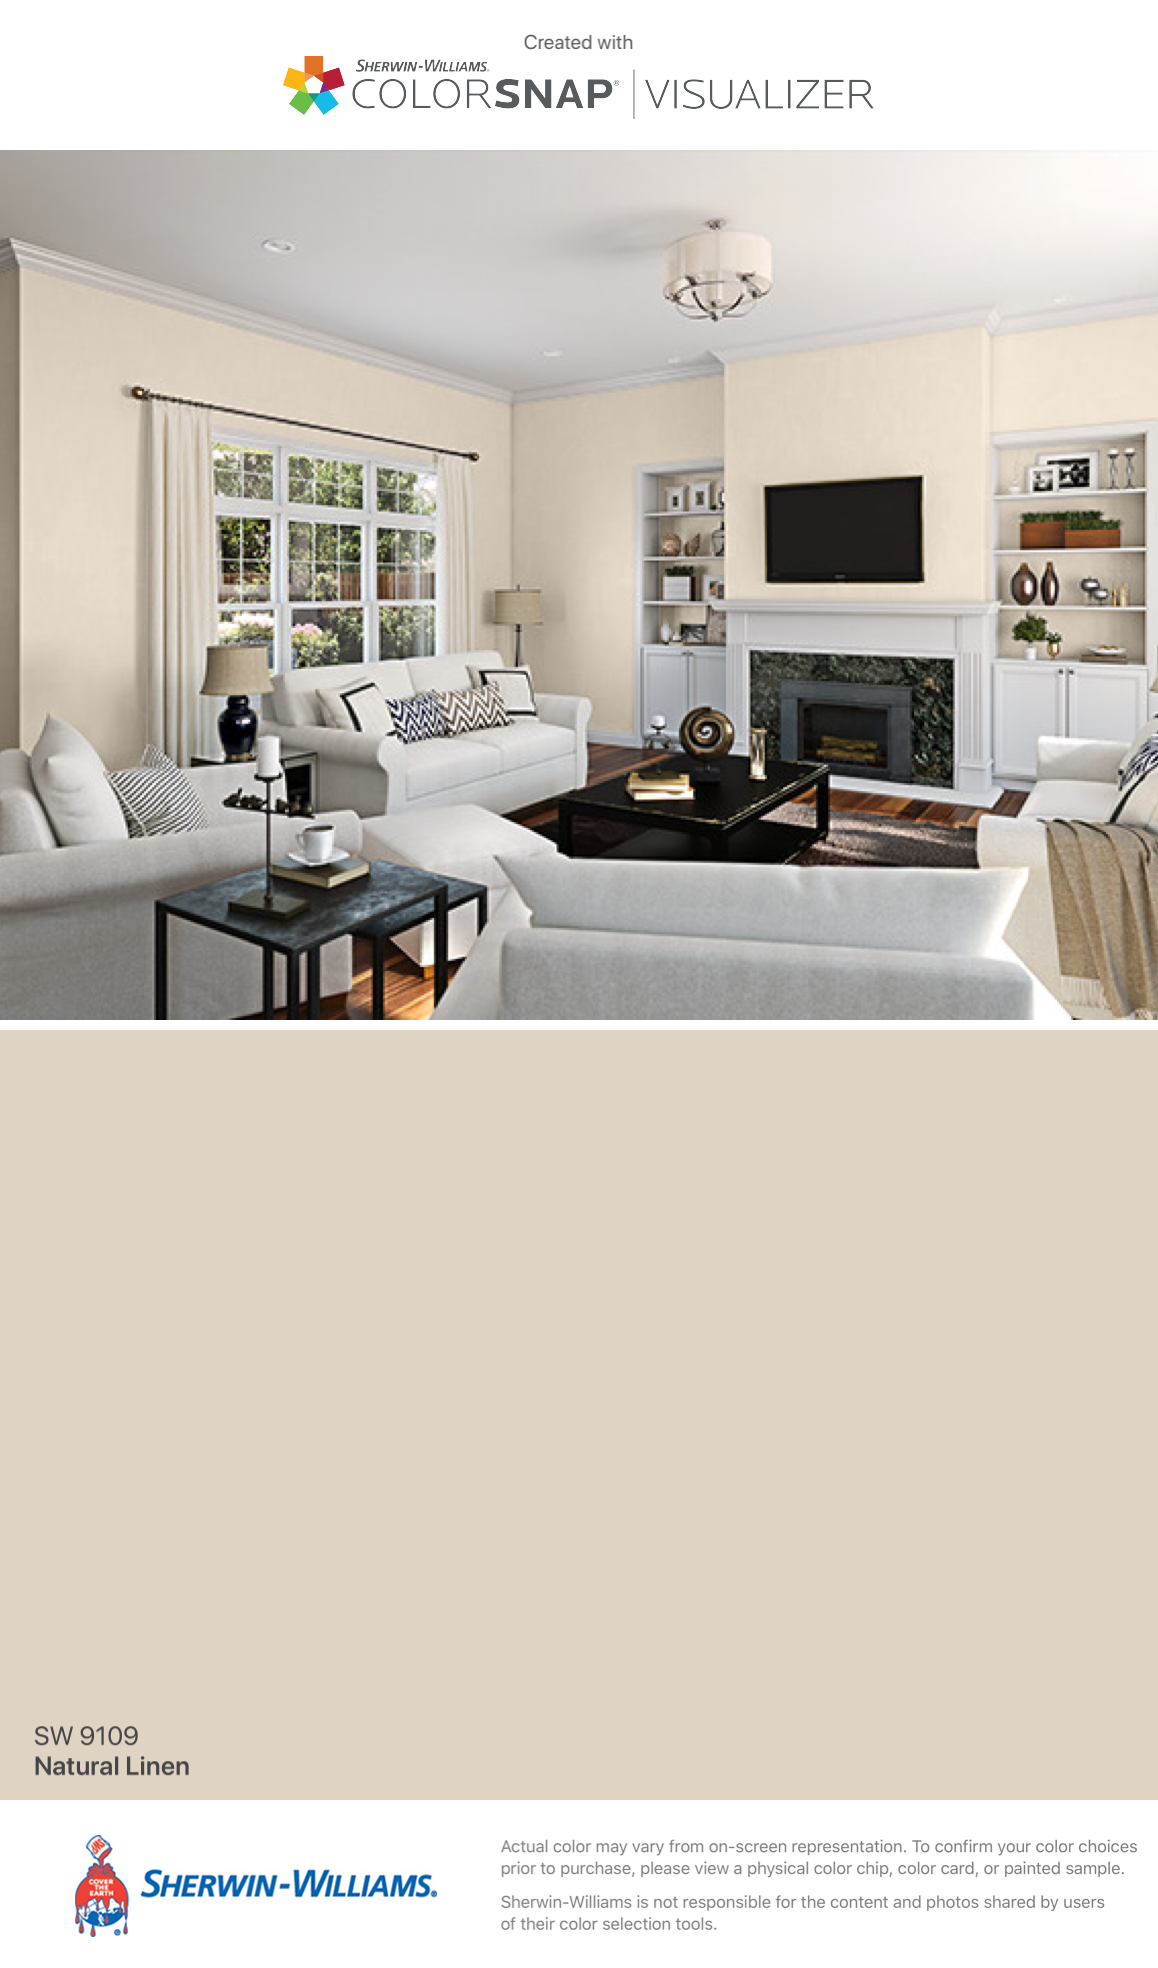 I Found This Color With Colorsnap Visualizer For Iphone By Sherwin Williams Natural Linen Sw 9109